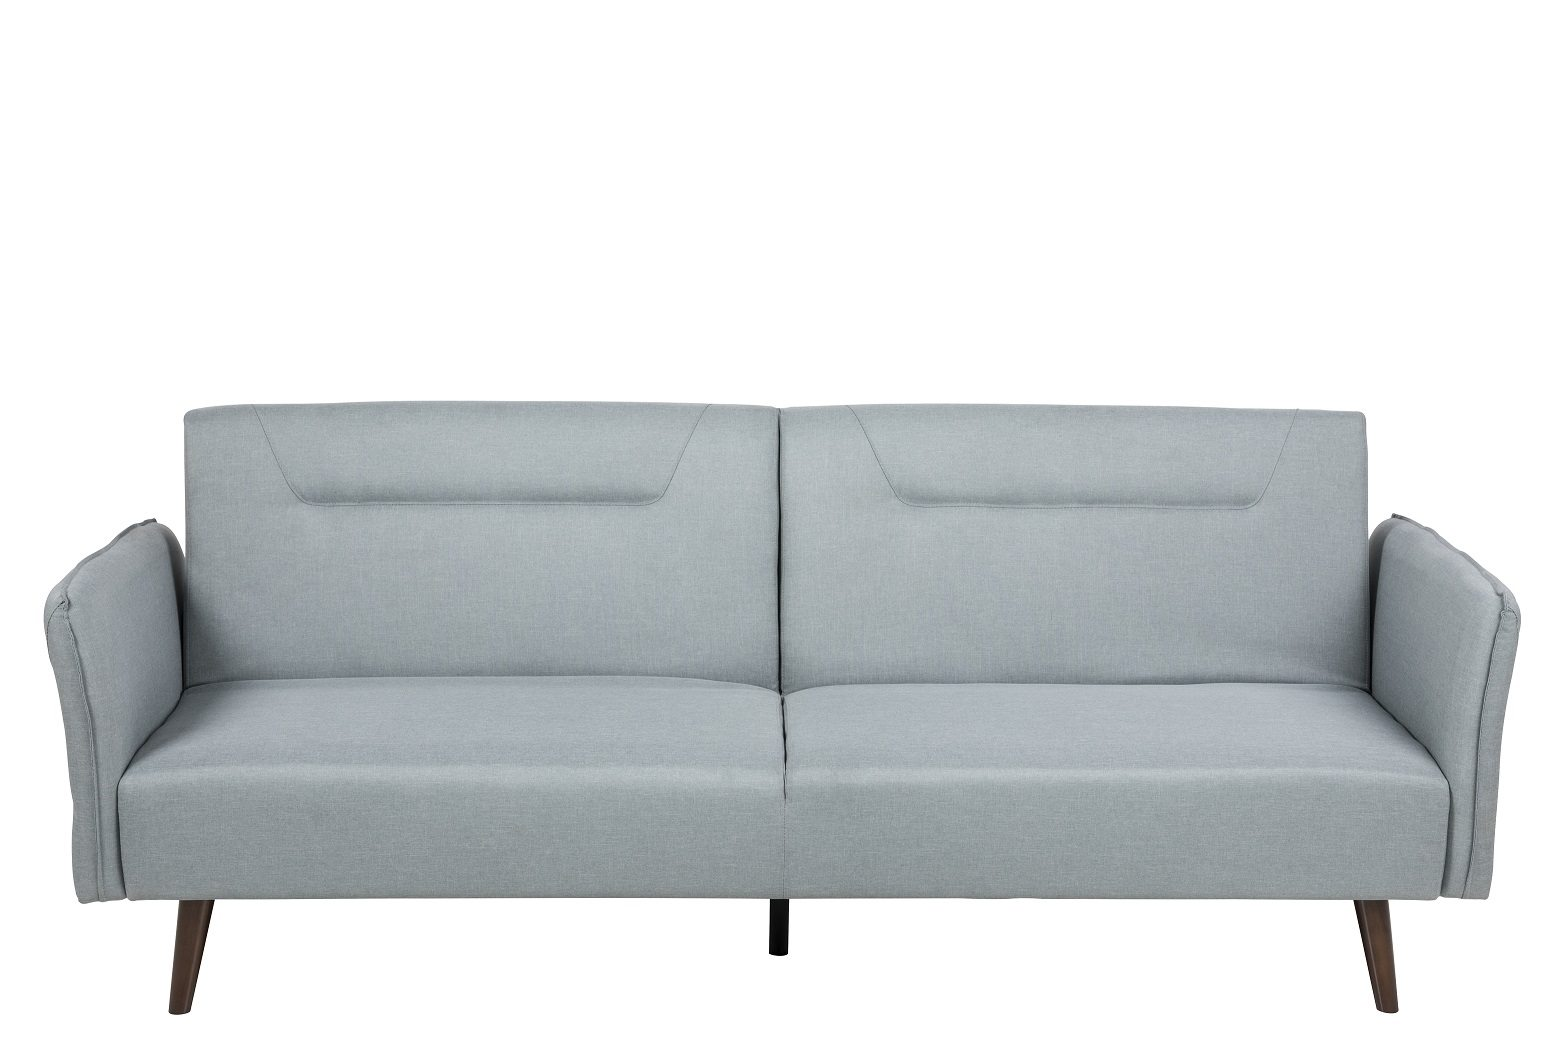 diano-sofa-bed-1